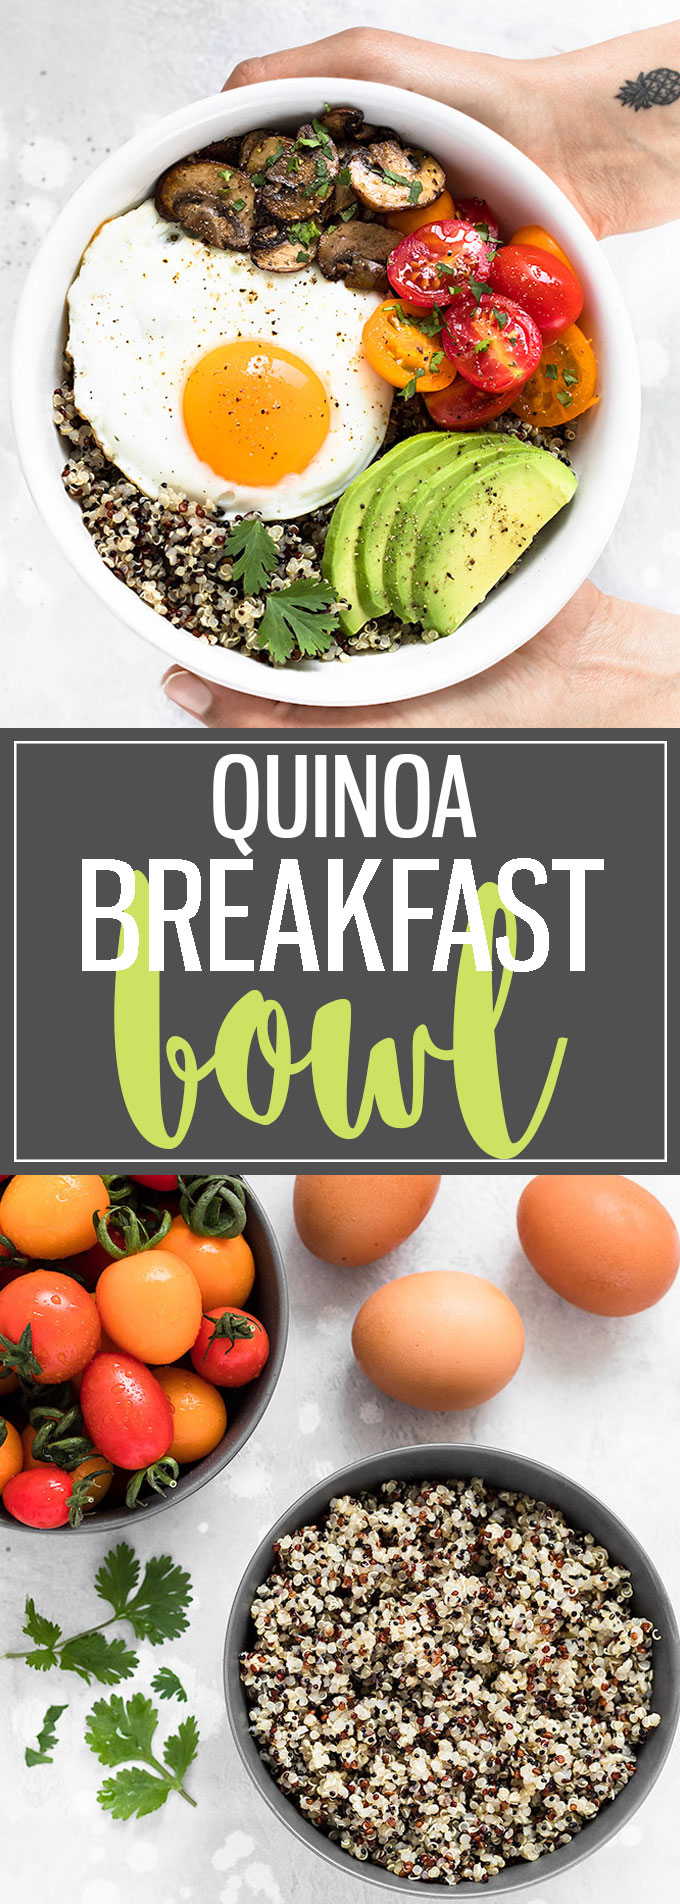 This Healthy Breakfast Bowl with Egg and Quinoa is a great way to combine nutritious ingredients into one simple,filling, and tasty meal.If you have cooked quinoa on hand, it comes together in about 10 minutes. Perfect for busy mornings! #breakfast #bowl #breakfastbowl #healthyeating #healthyrecipes #quinoa #mealprep #egg #brunch